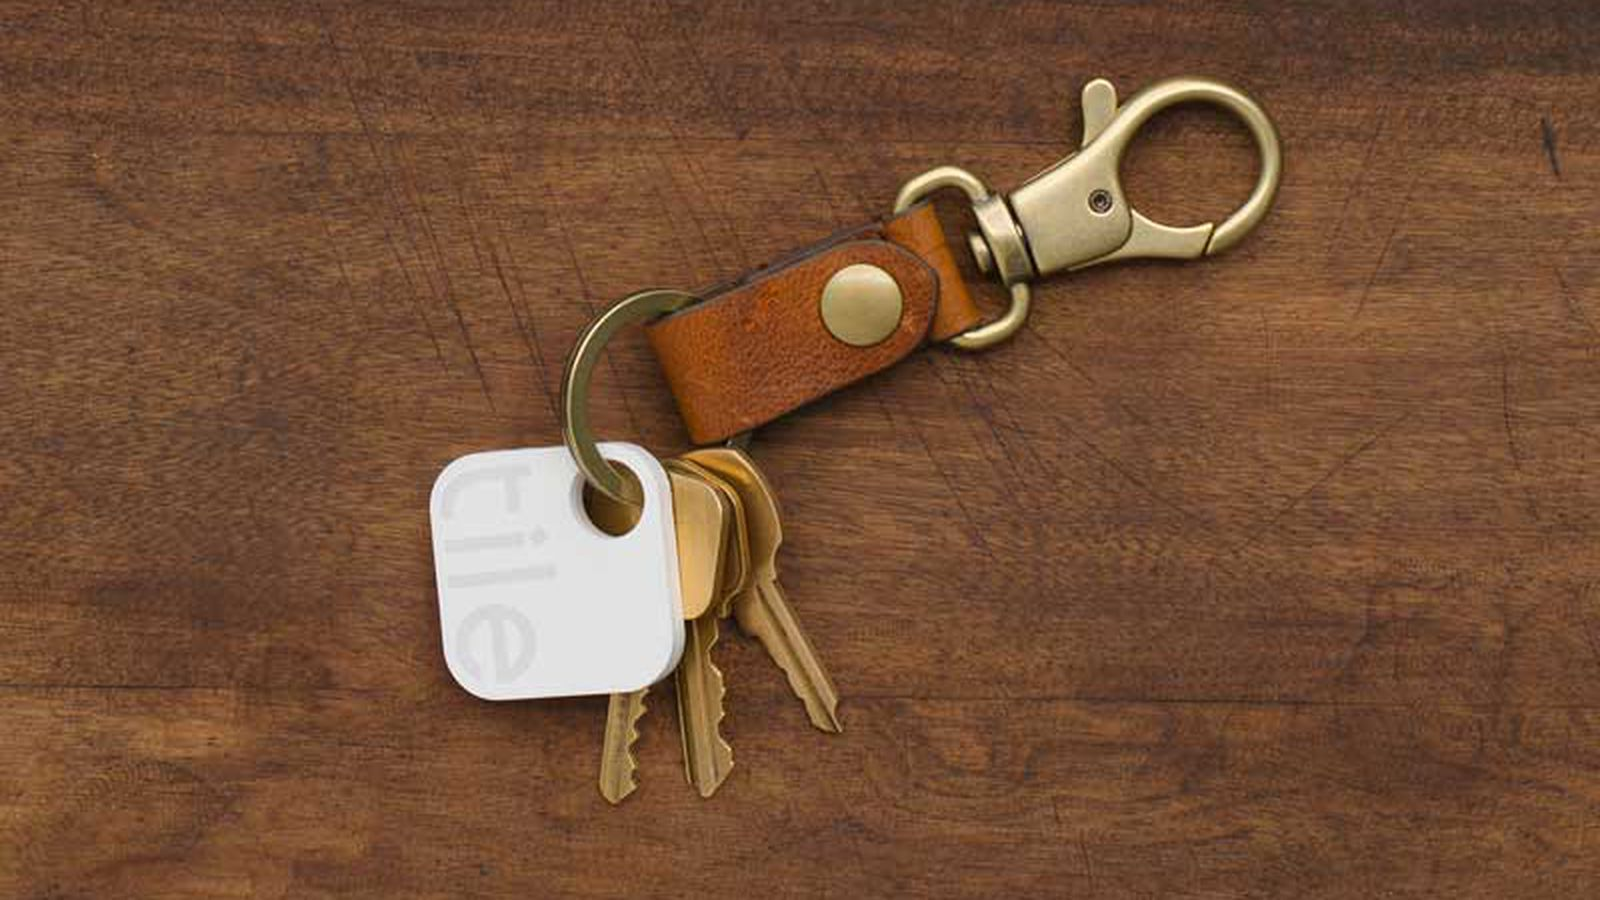 The New Tile Will Let You Find Your Keys Or Your Phone